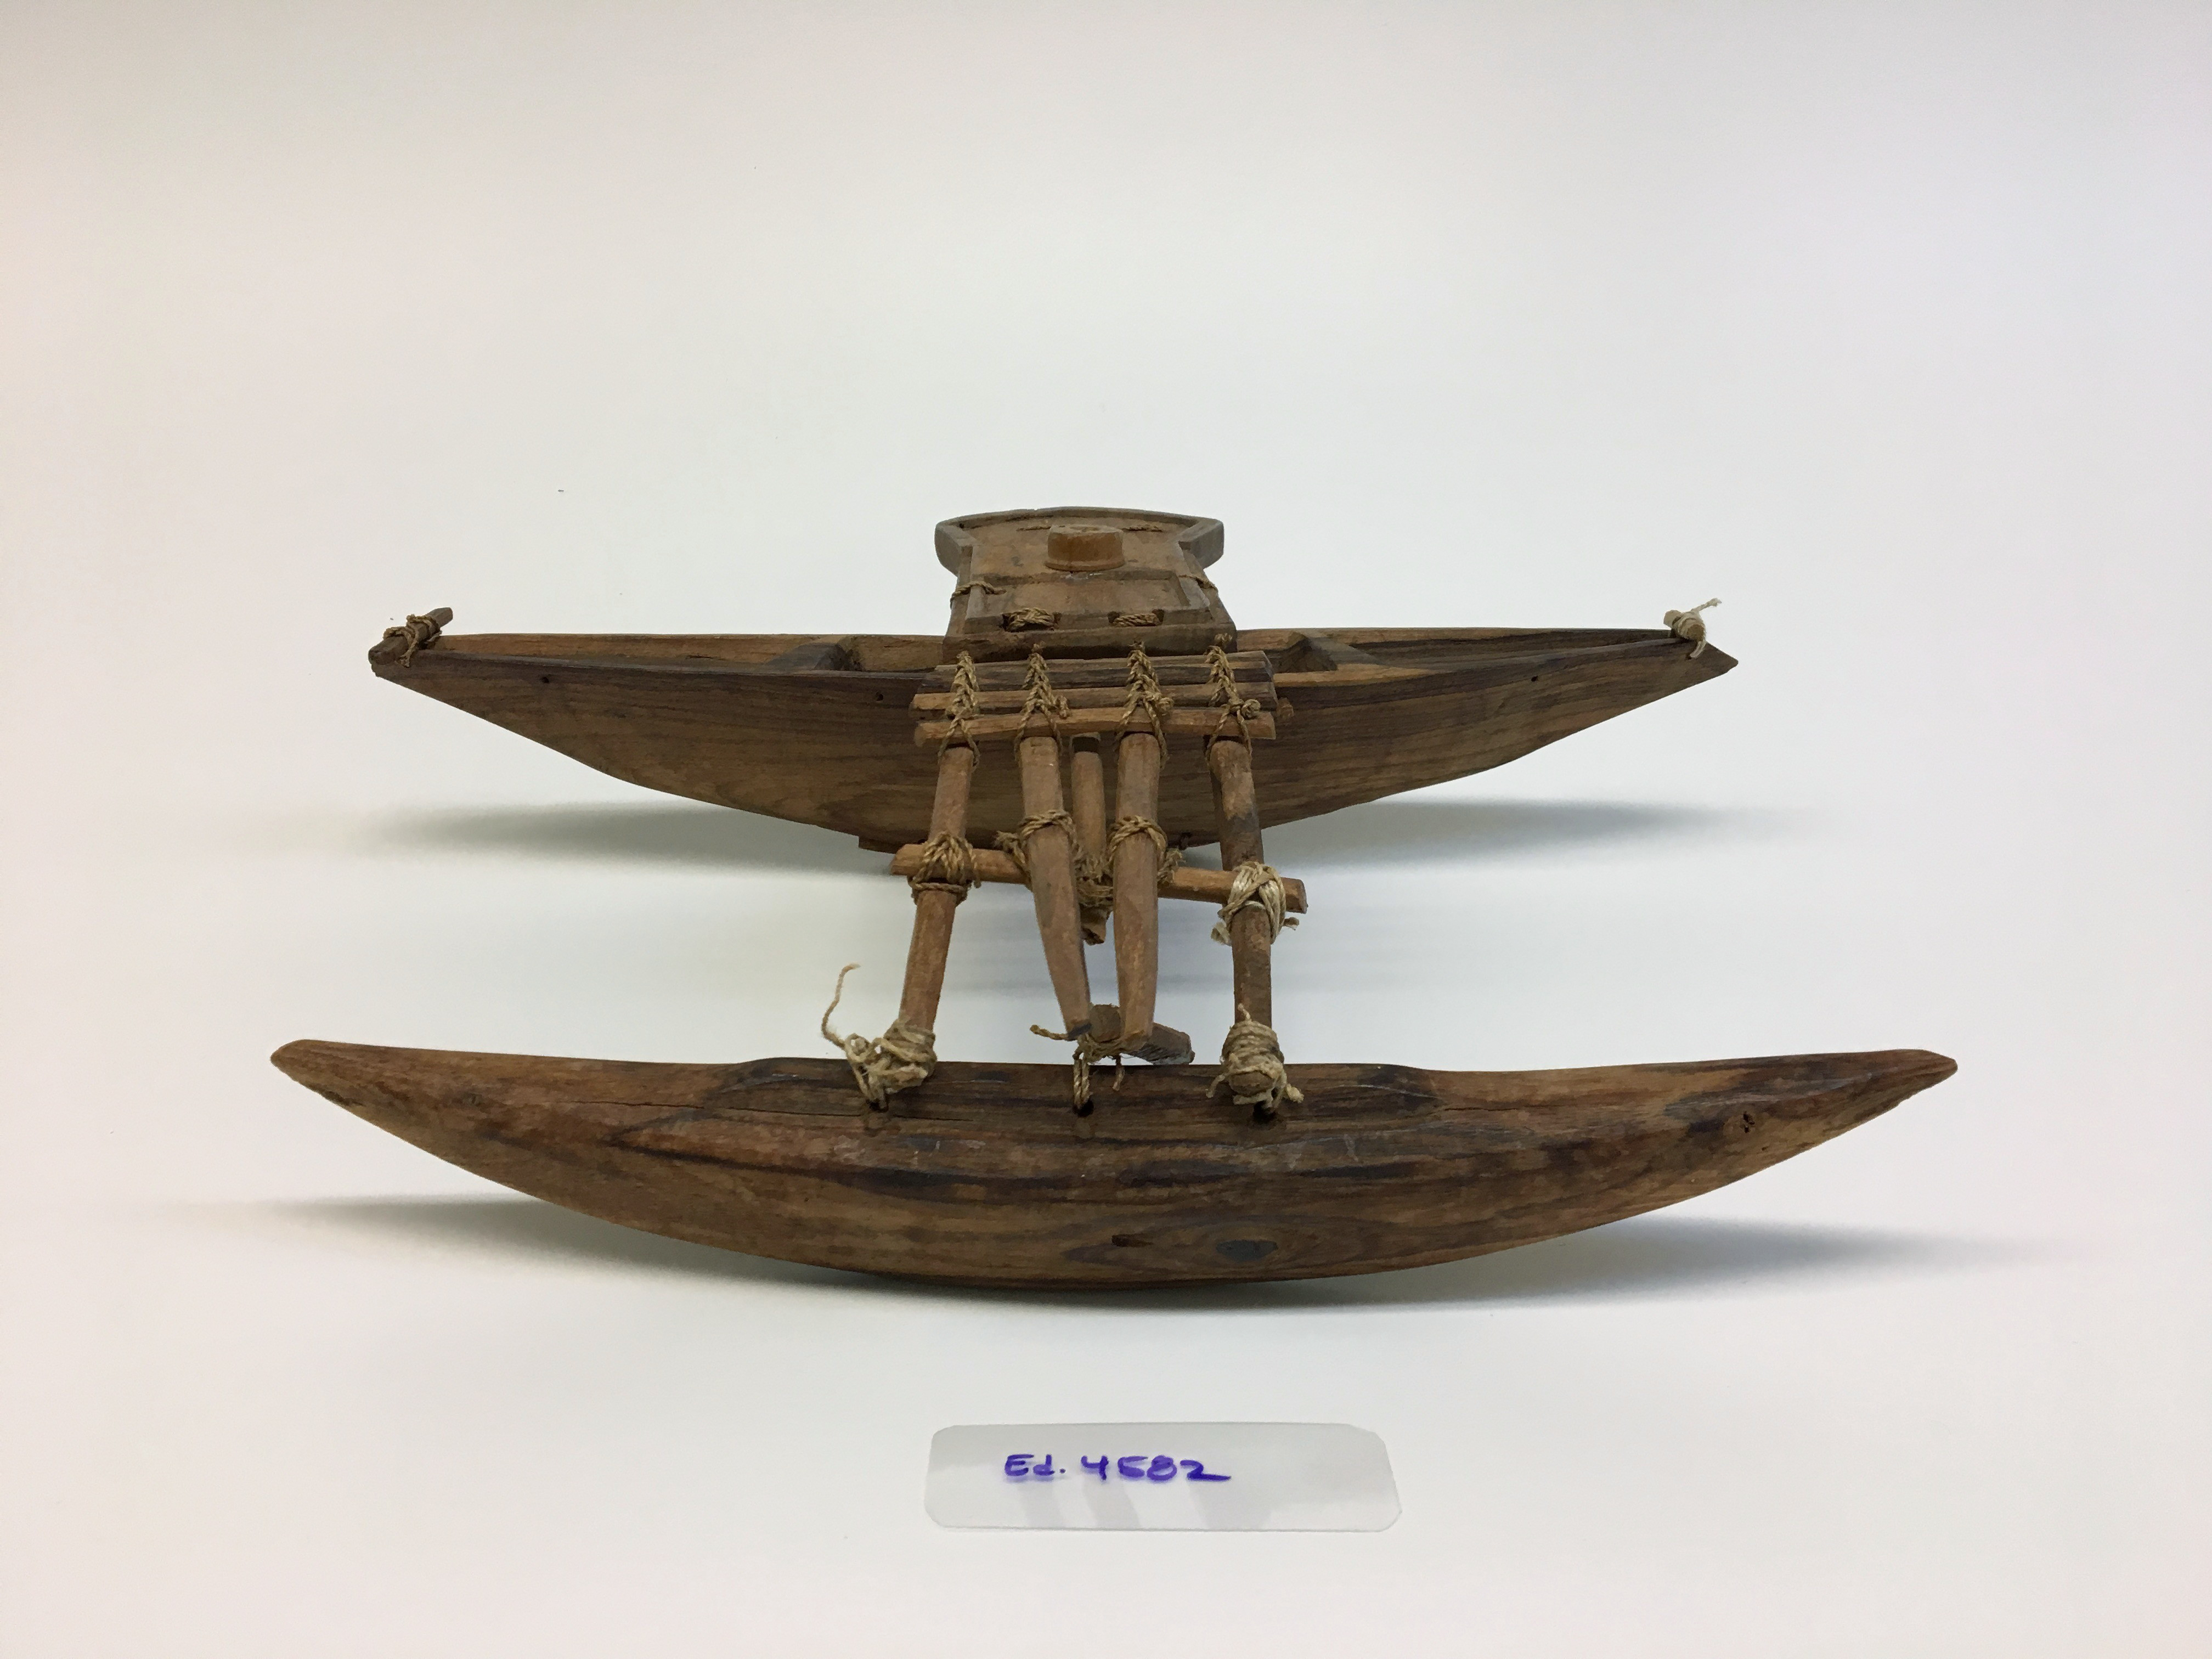 Kainōknōk (canoe model ornament)